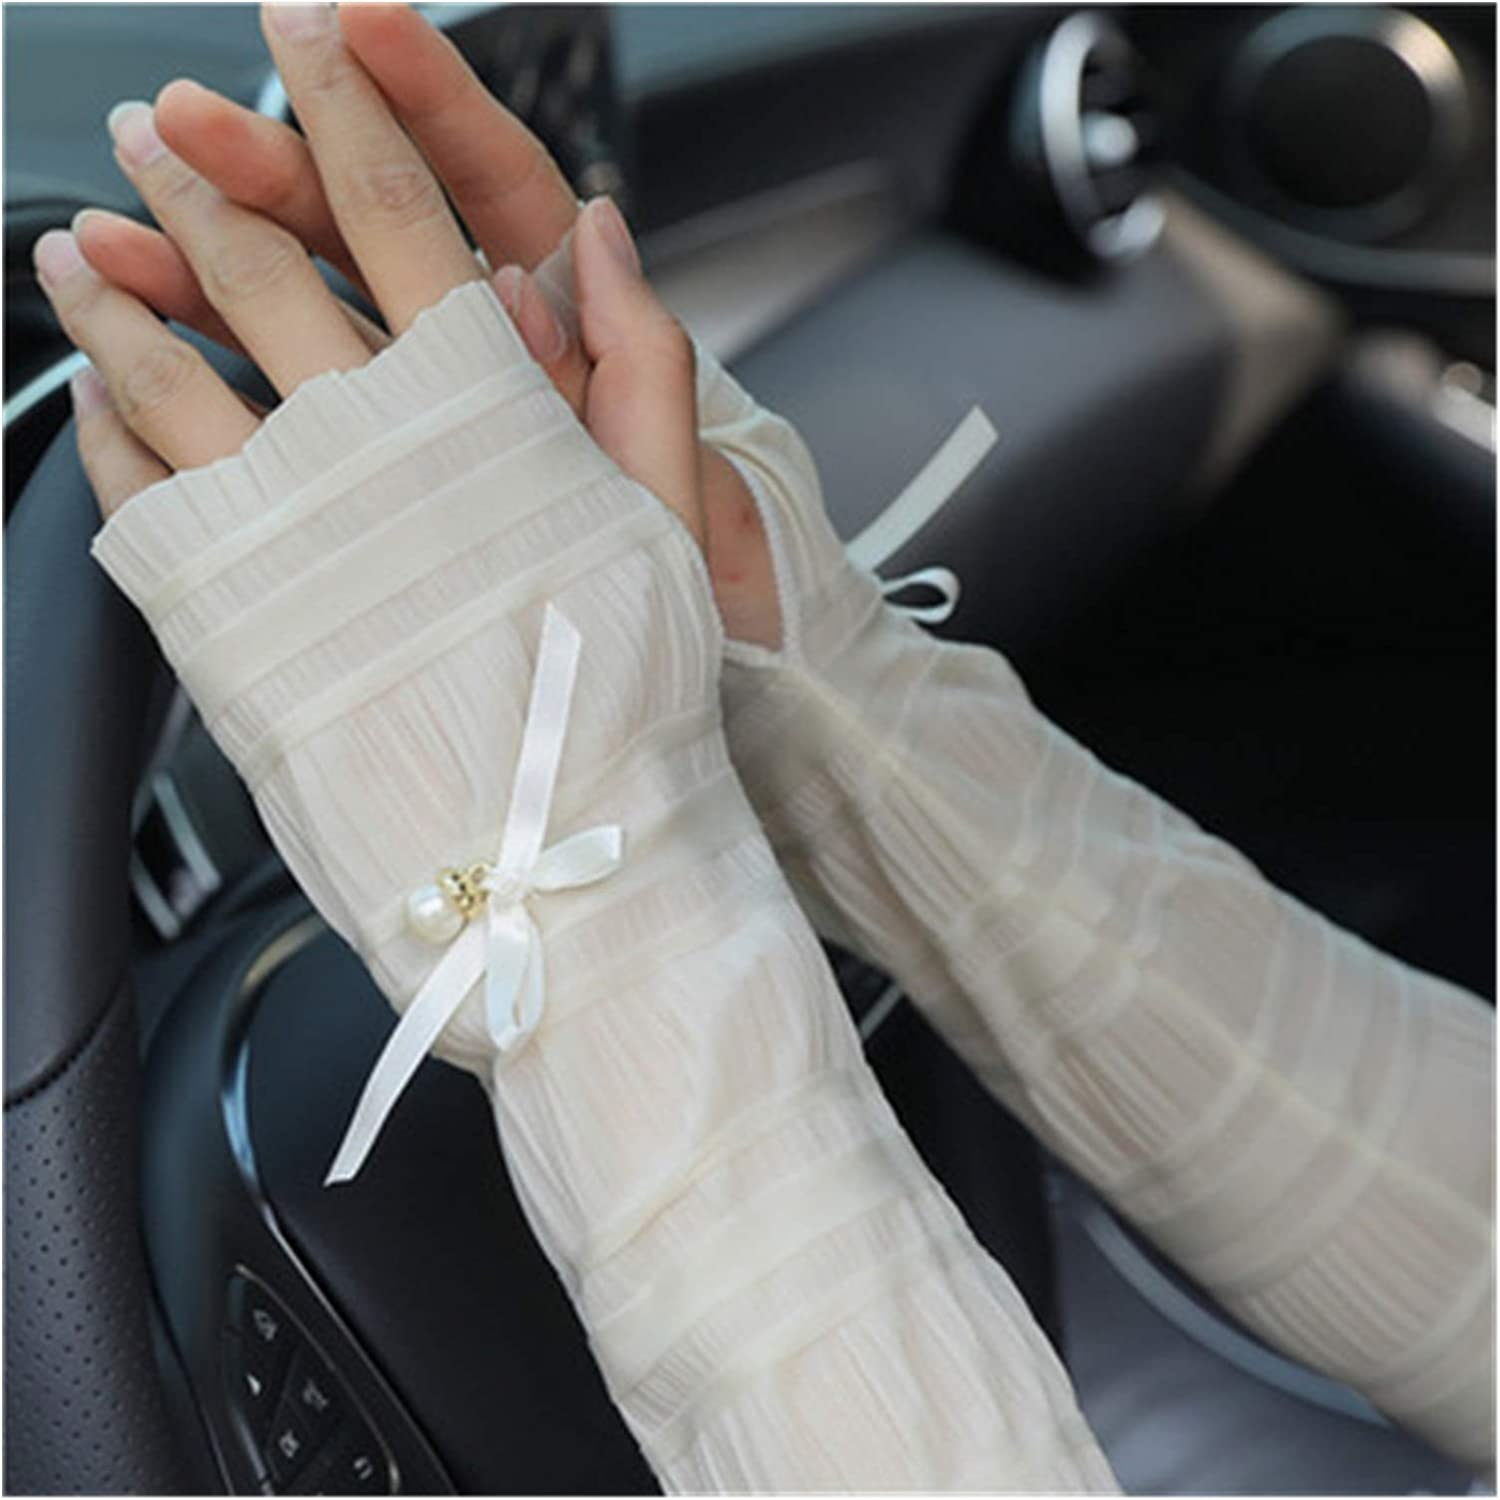 xczbb Sun Protection Gloves Lace Glove Cheap Sunscreen Sl Summer Women SEAL limited product